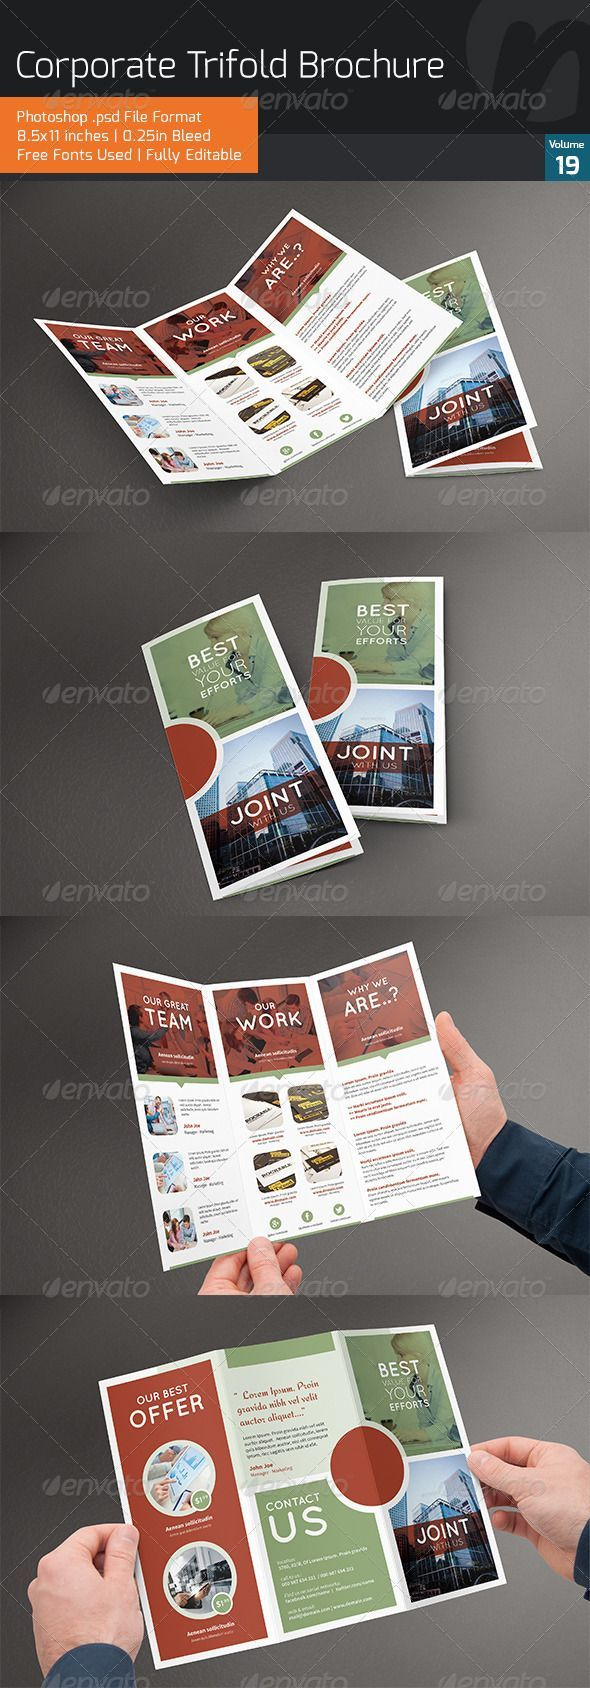 i liked the design of this brochure because the design is very organized and it depends